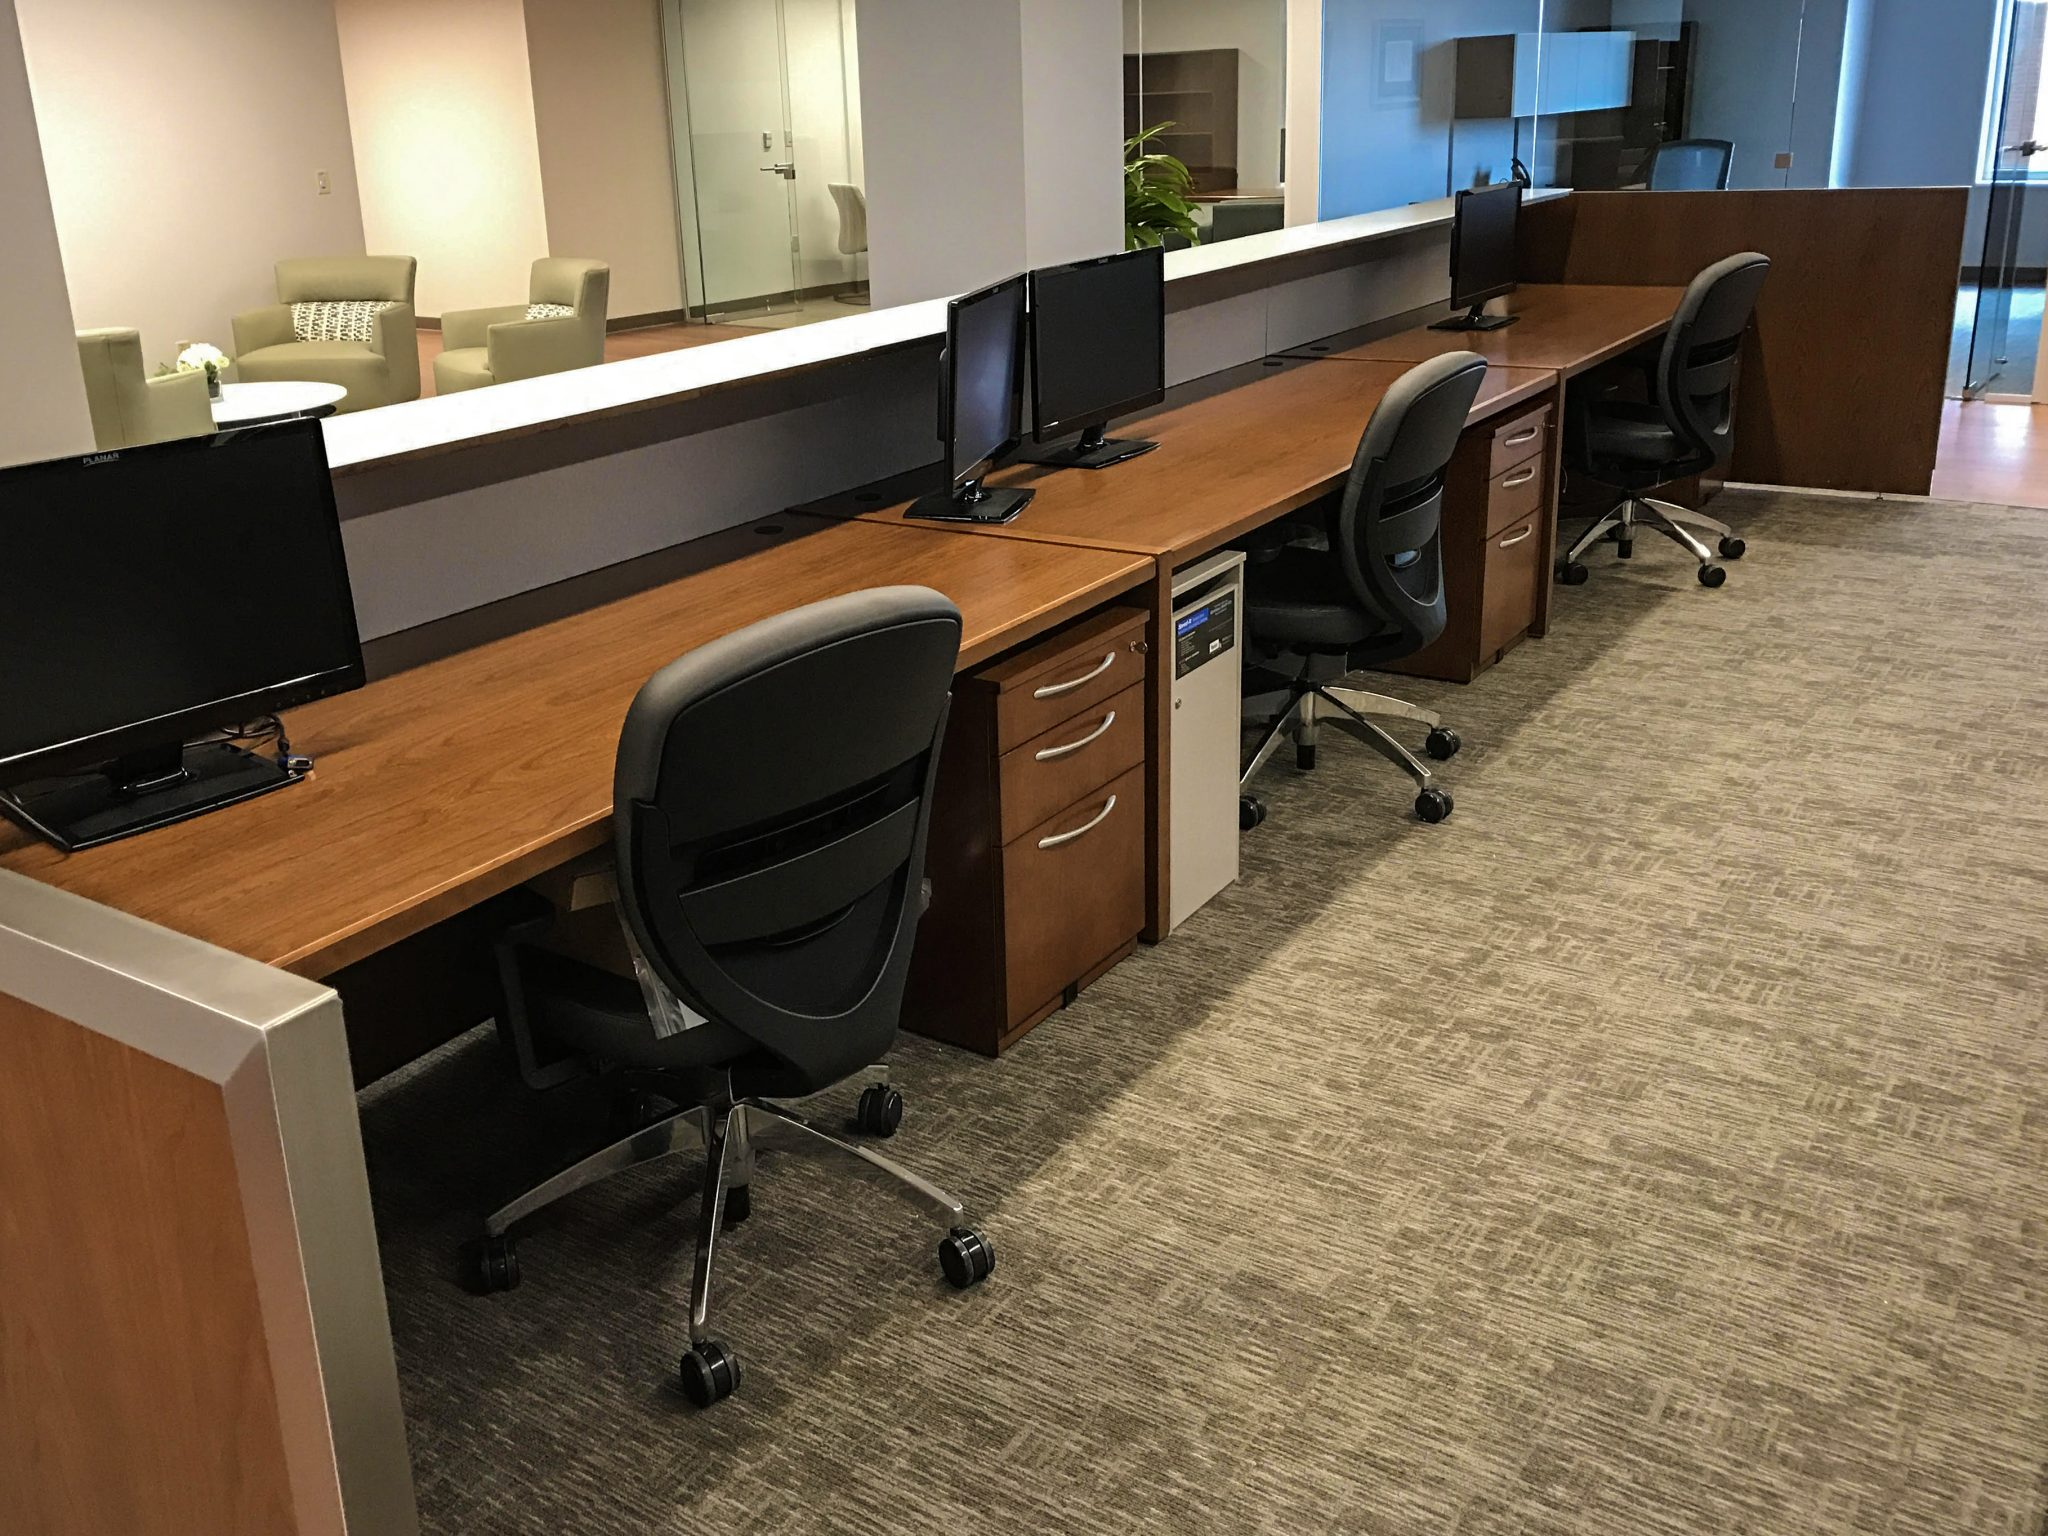 WVU Medicine adding glass to divide offices and conference rooms